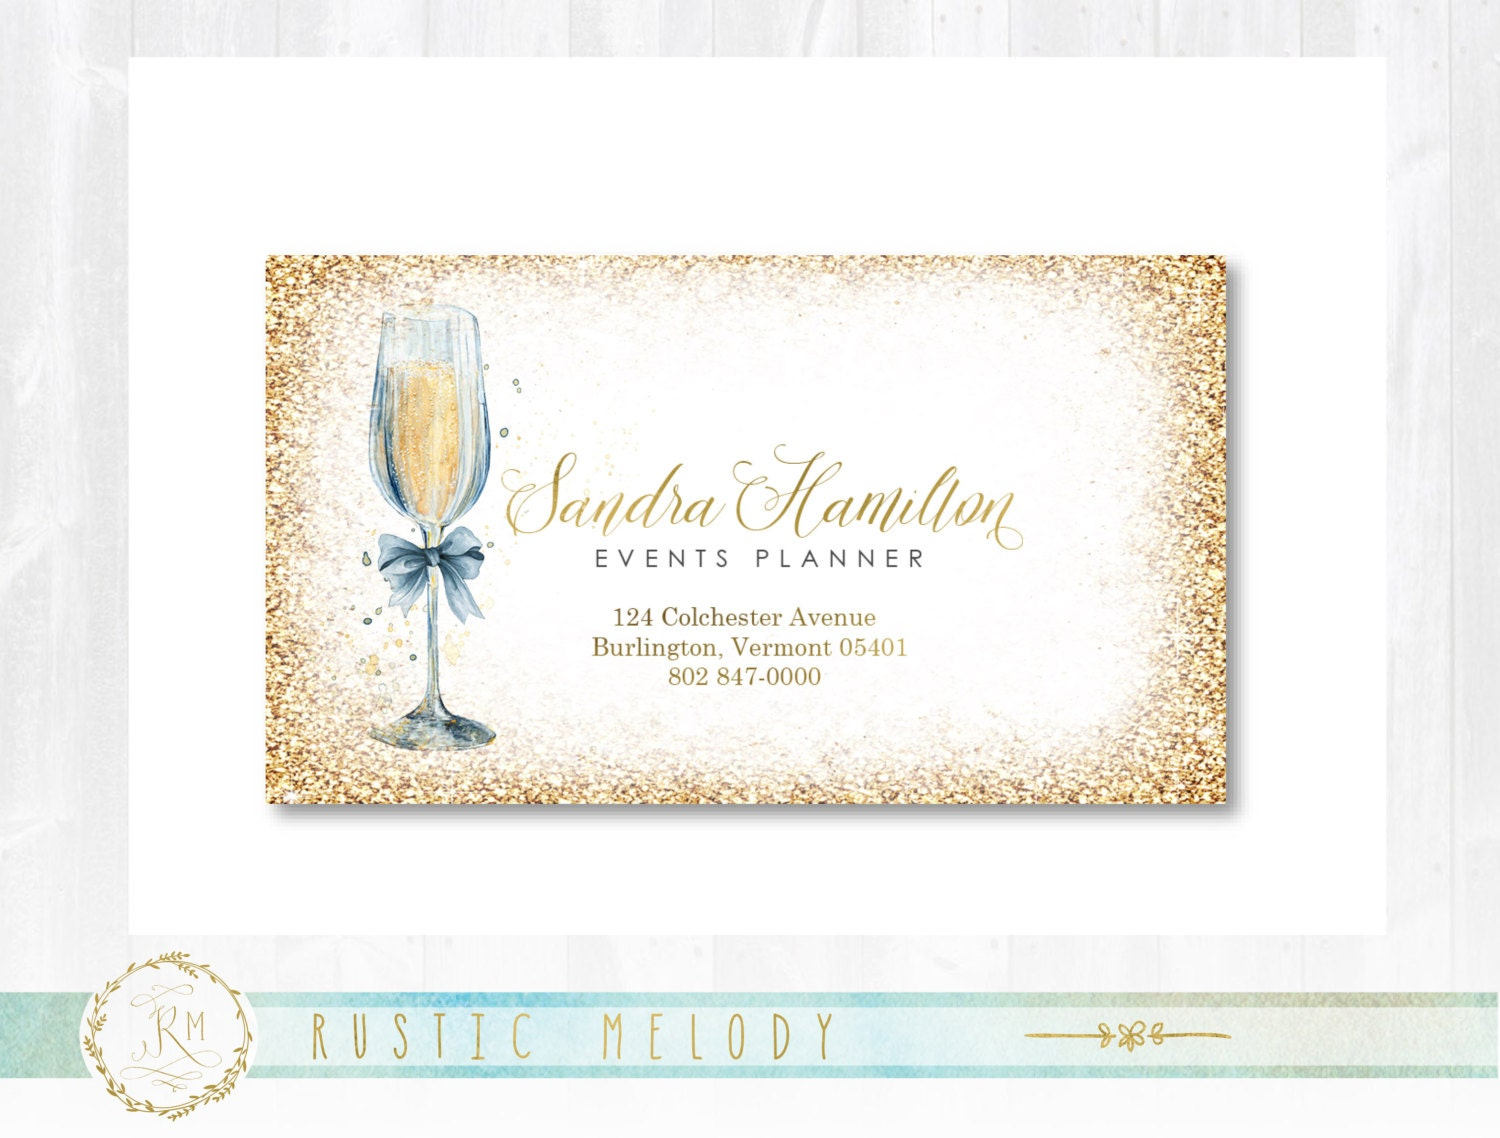 Premade Party Planner Business Card , Photography Business Card ...